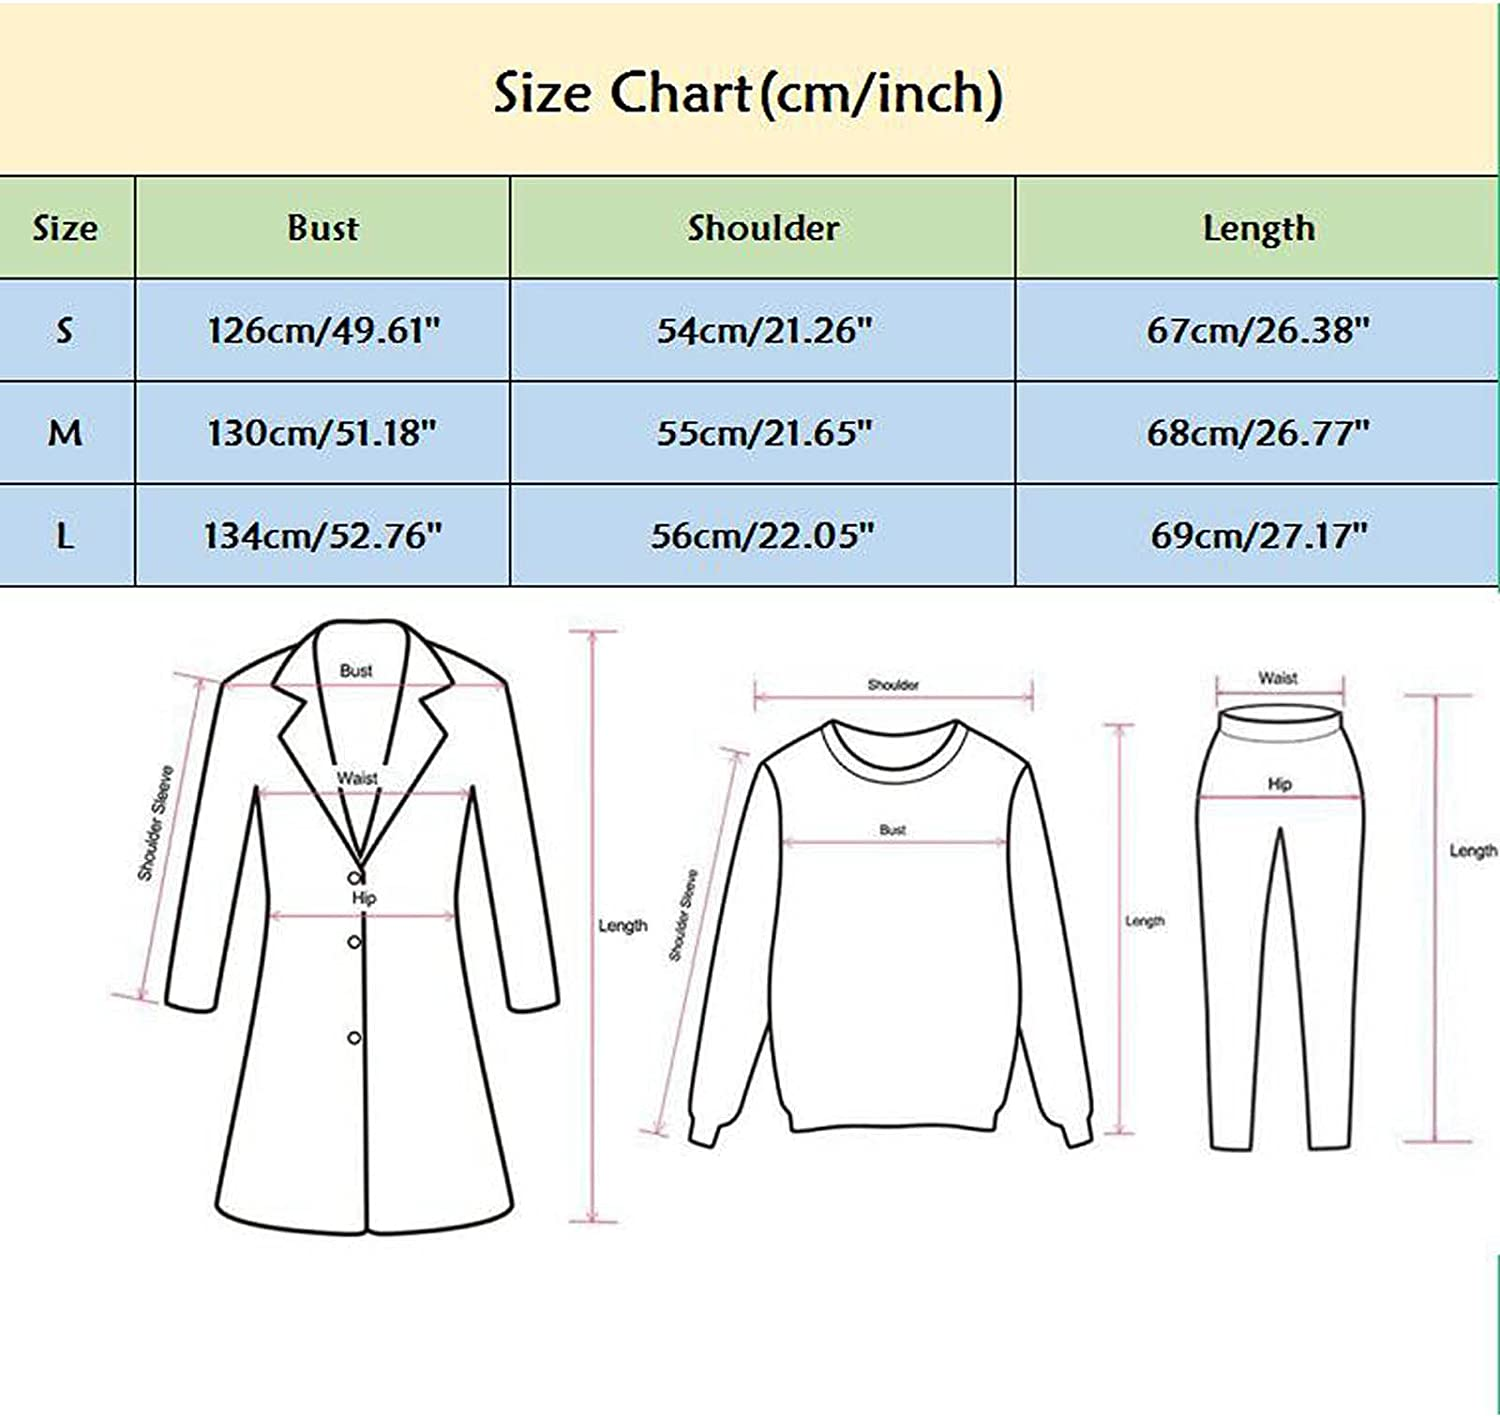 Misaky Women's Loose Jacket Top Casual Full Zip Up Butterfly Perm Long Sleeve Hoodie